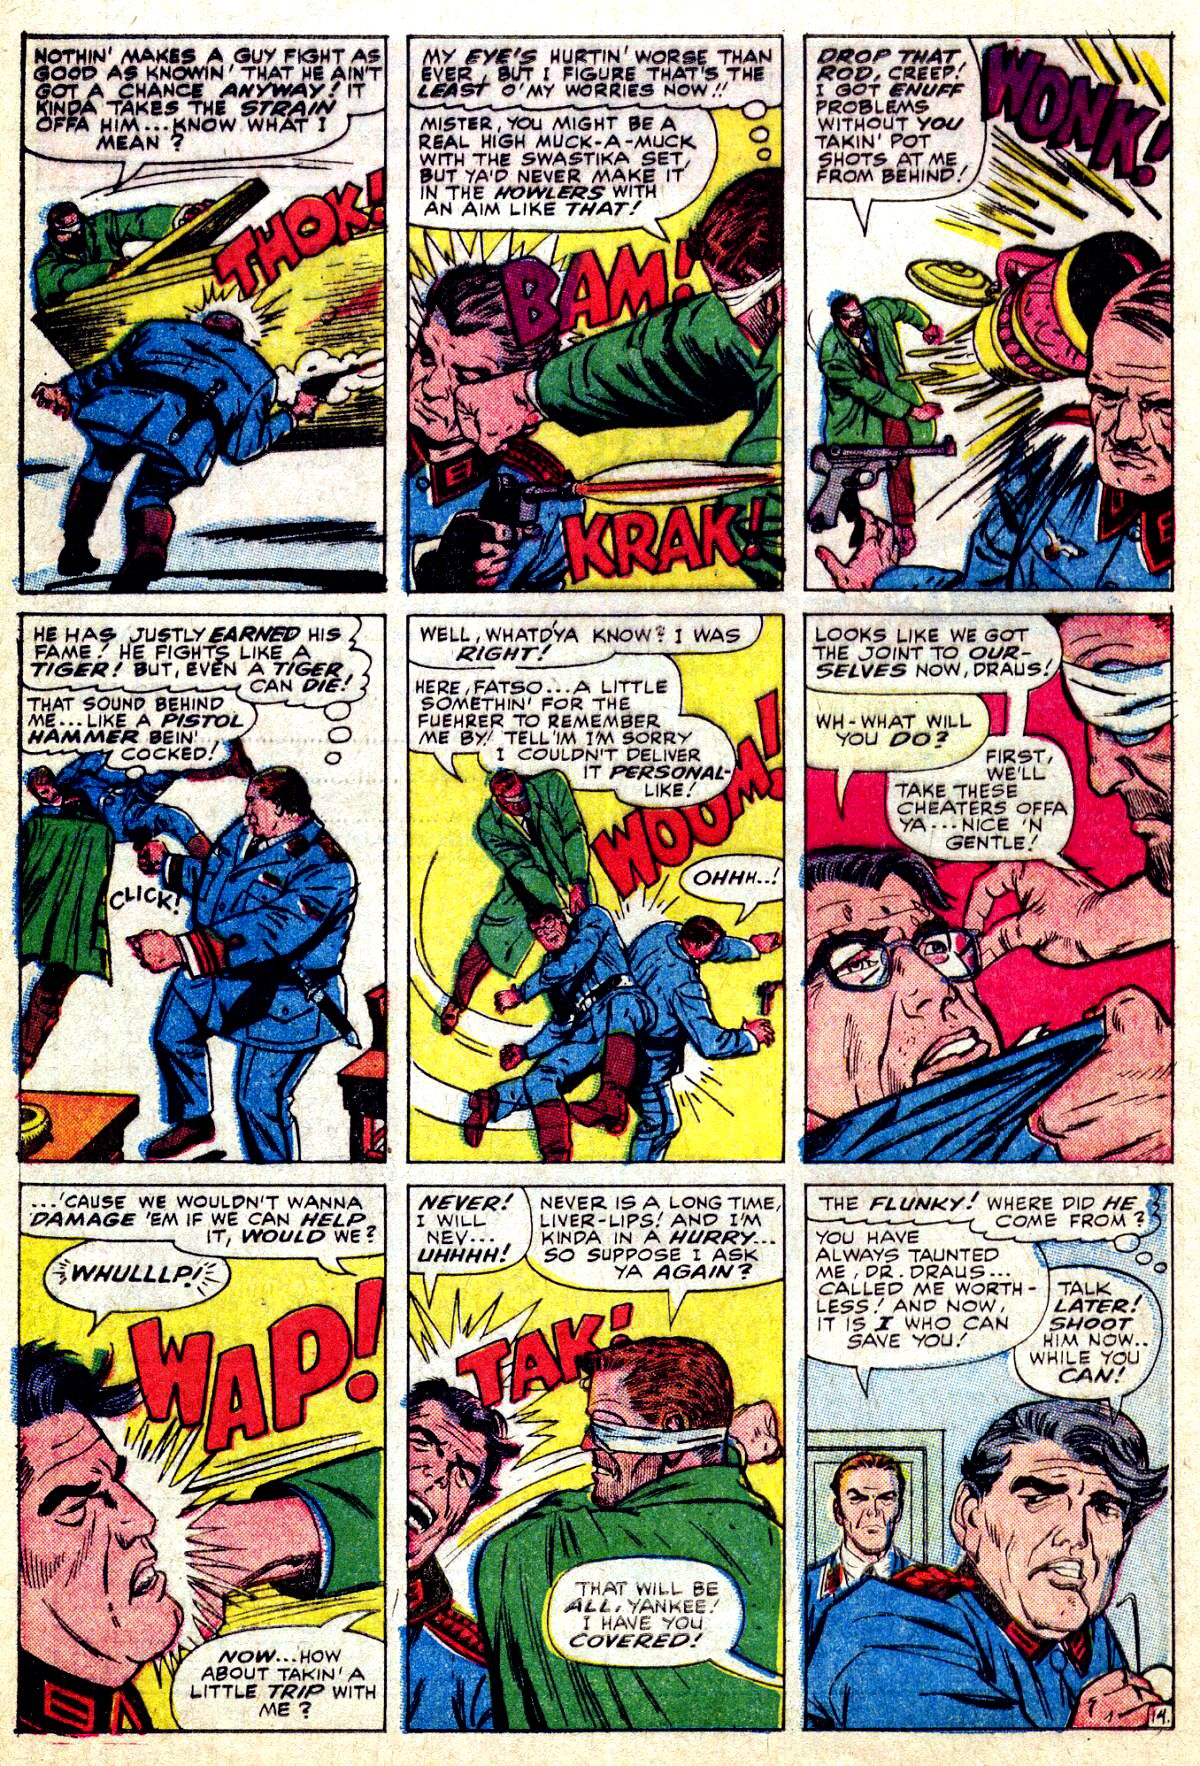 Read online Sgt. Fury comic -  Issue #27 - 20